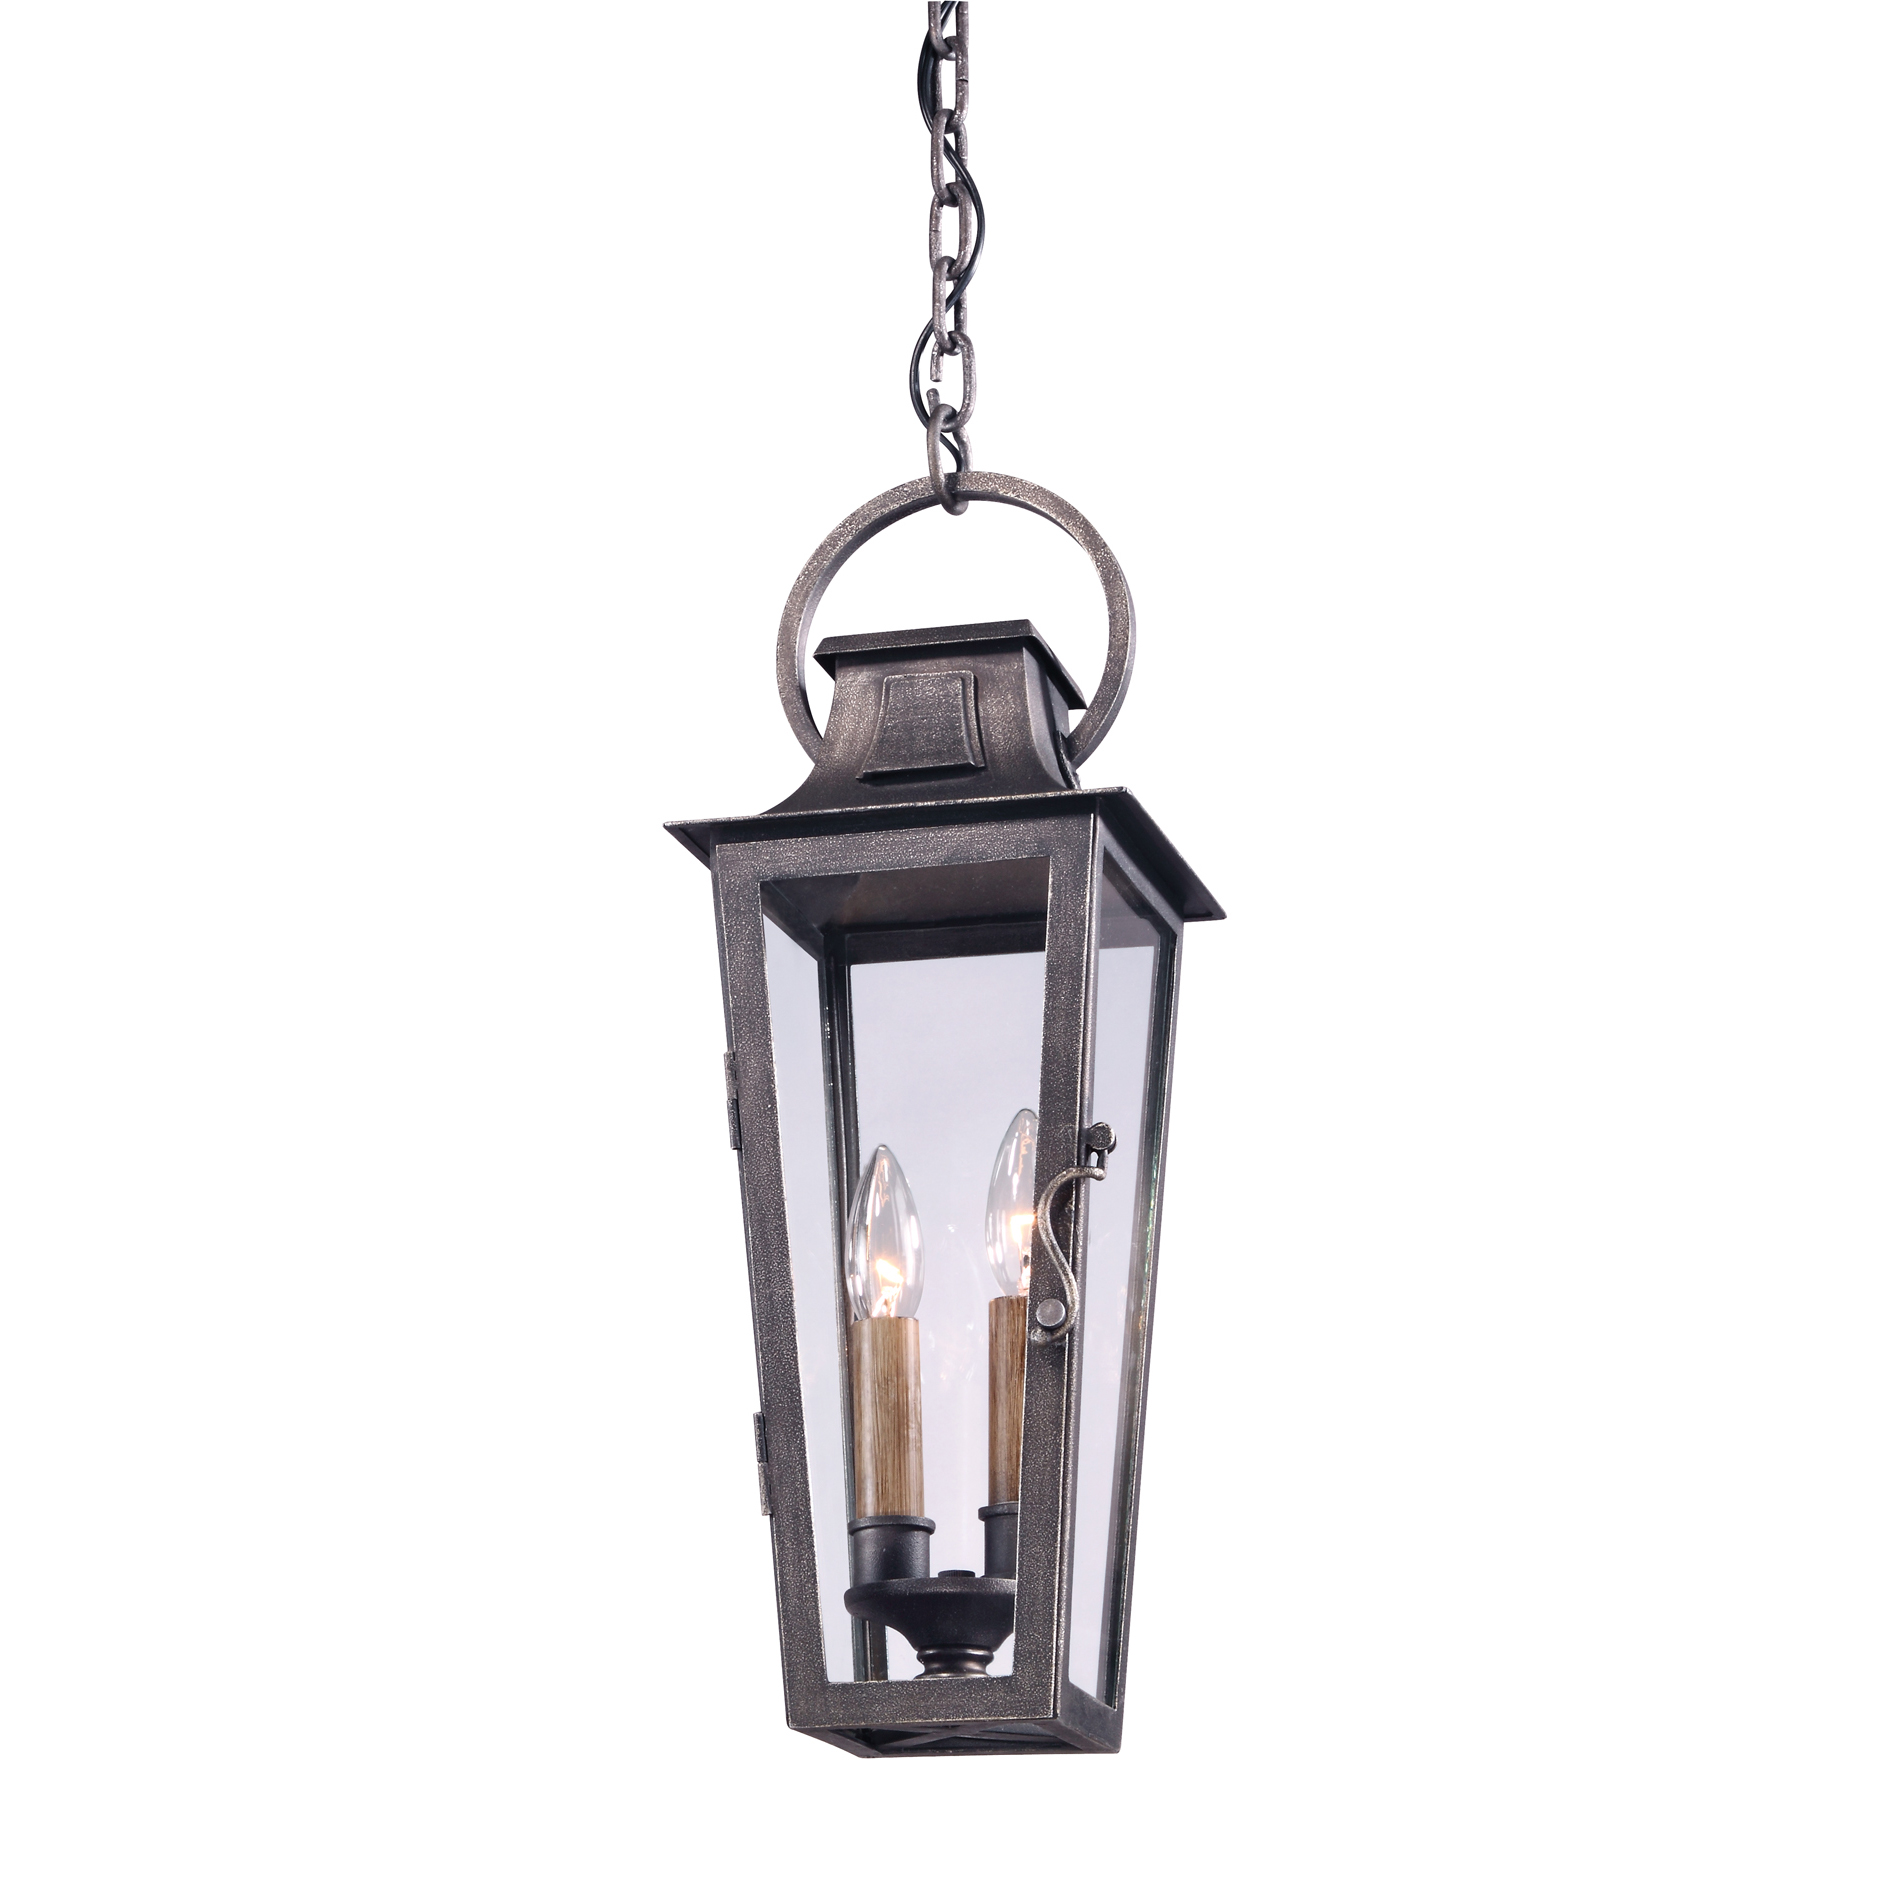 French Quarter Ceiling Mount Lantern By Troy Lighting F2966